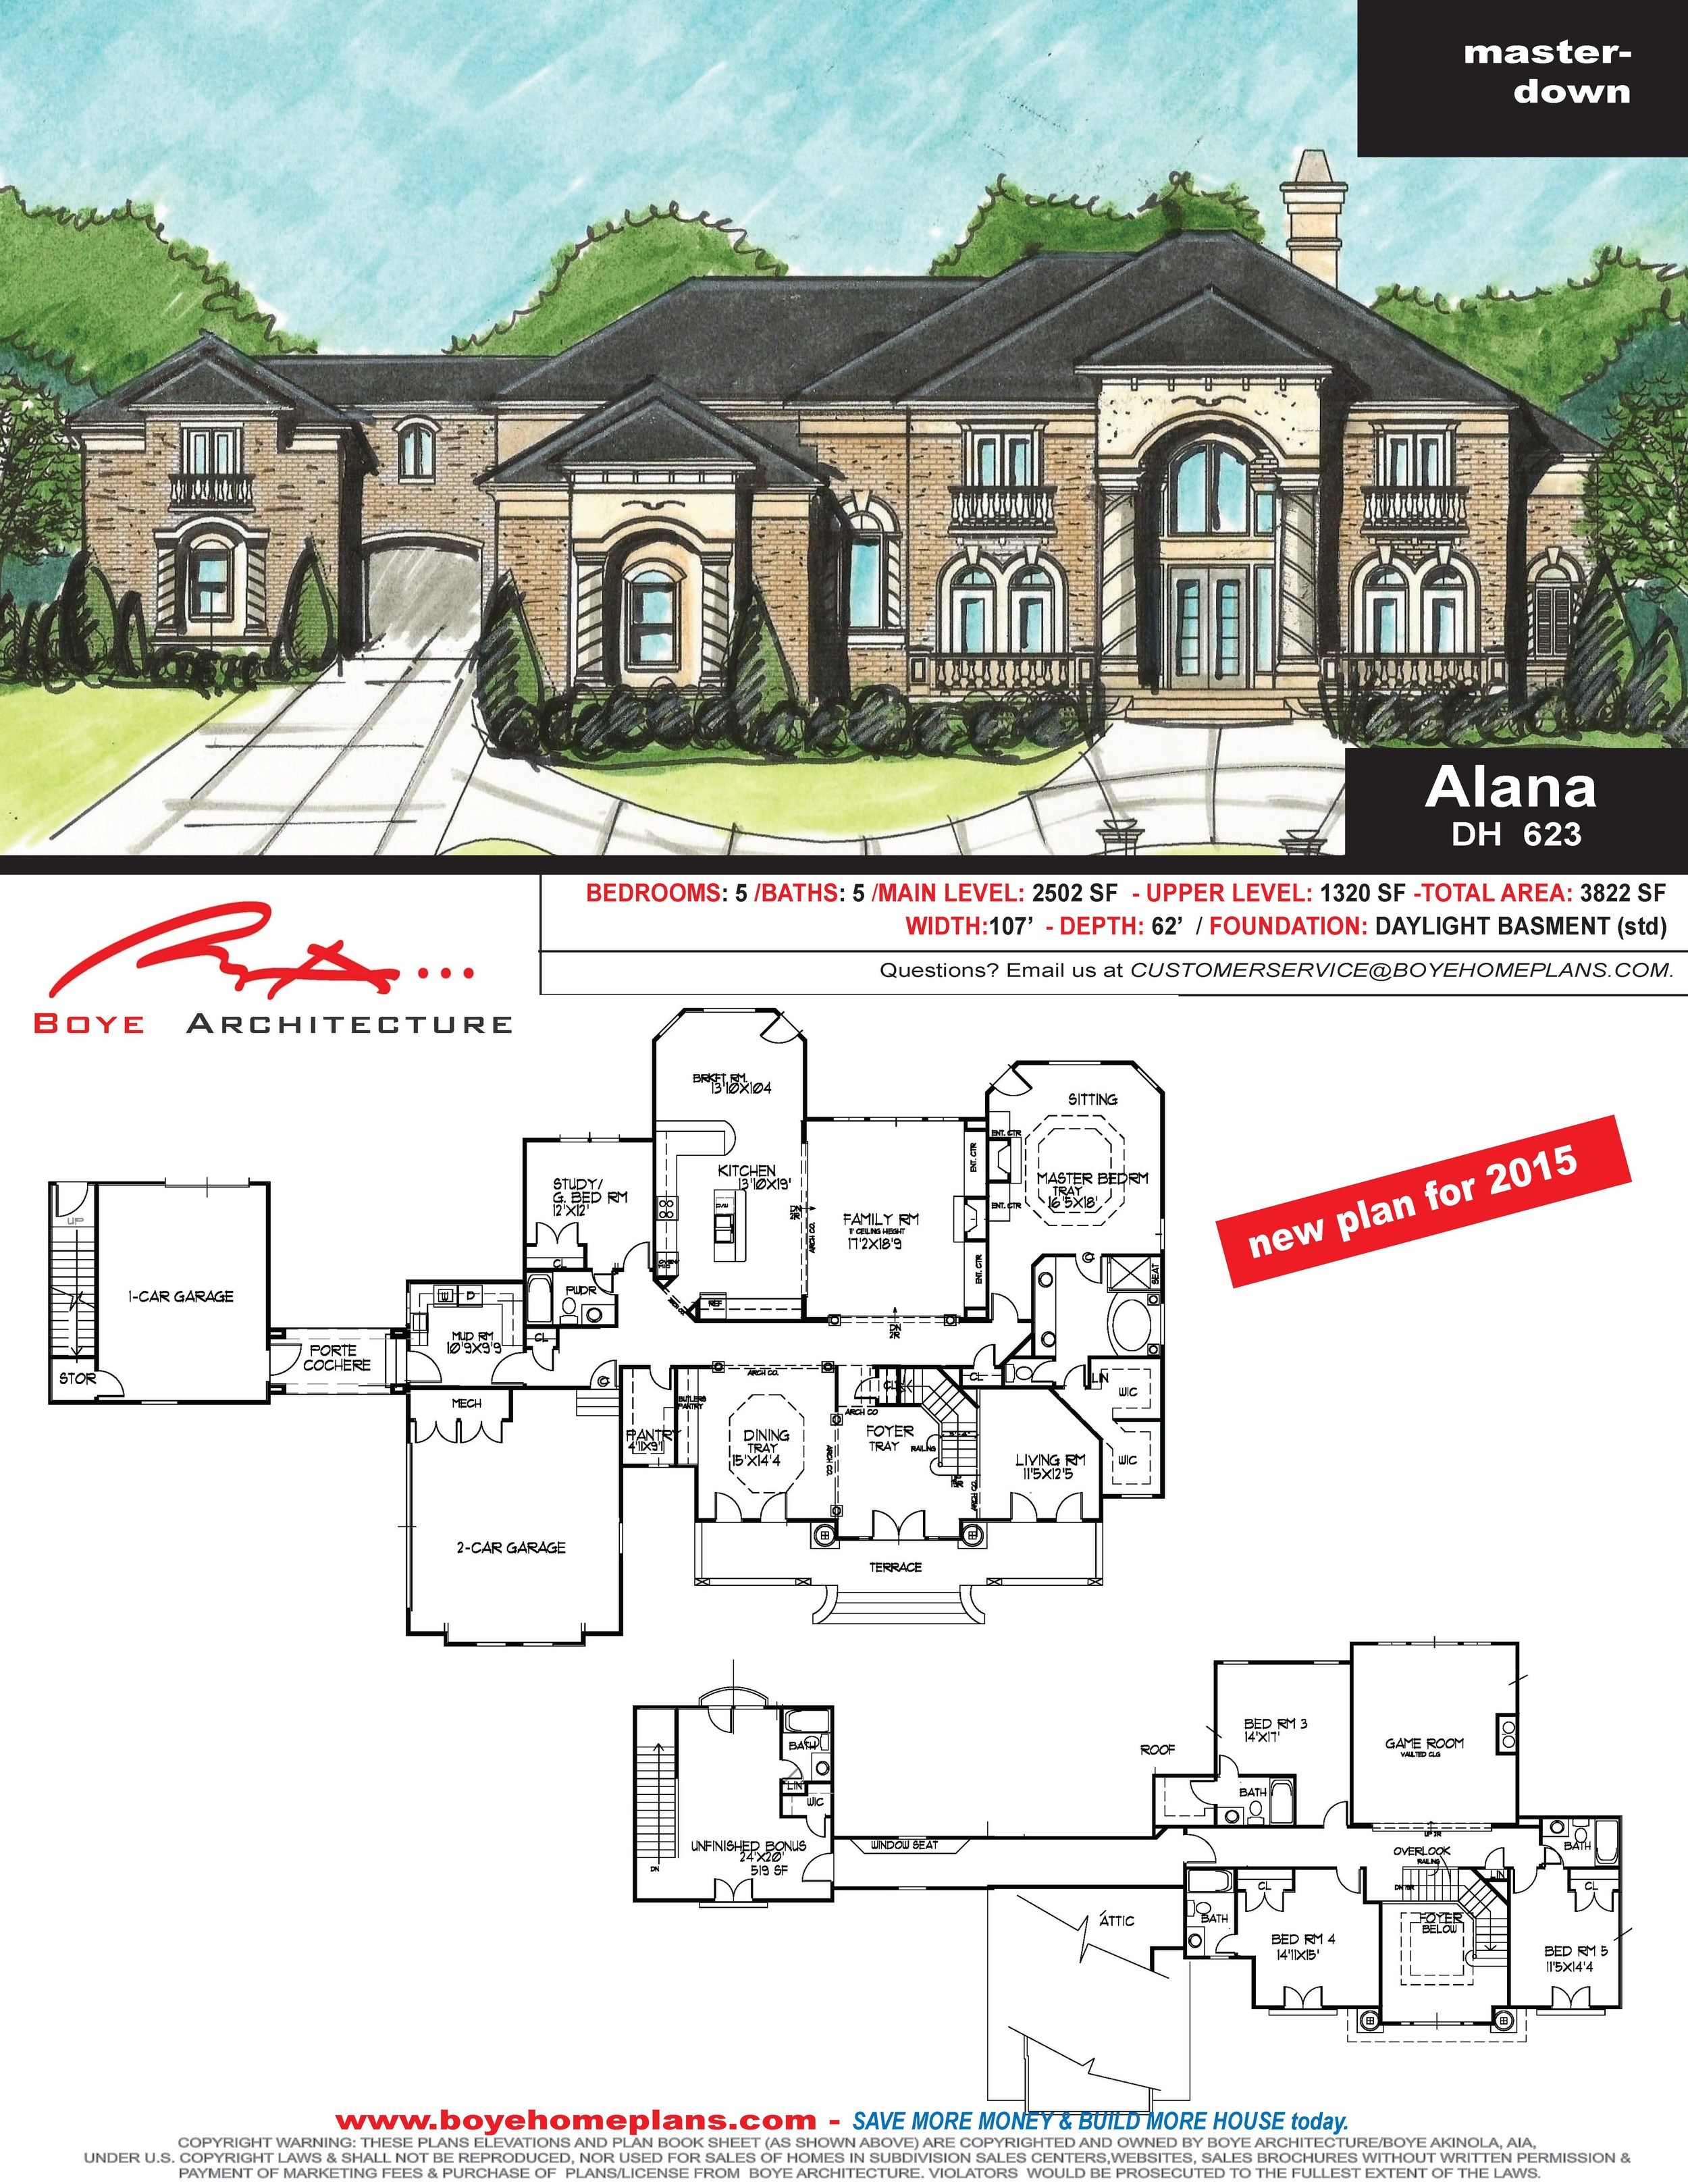 House Plans in Nashville, Tennessee — Custom Home Design ... on downton abbey house plan, bancroft house plan, long island house plan, chapel hill house plan, ripley house plan, vincennes house plan, queens house plan, maple hill house plan, camelot house plan, holly springs house plan, blue ridge house plan, augusta house plan, davenport house plan, binghamton house plan, family guy house plan, the fosters house plan, breaking bad house plan, last man standing house plan, walnut creek house plan, lewisburg house plan,